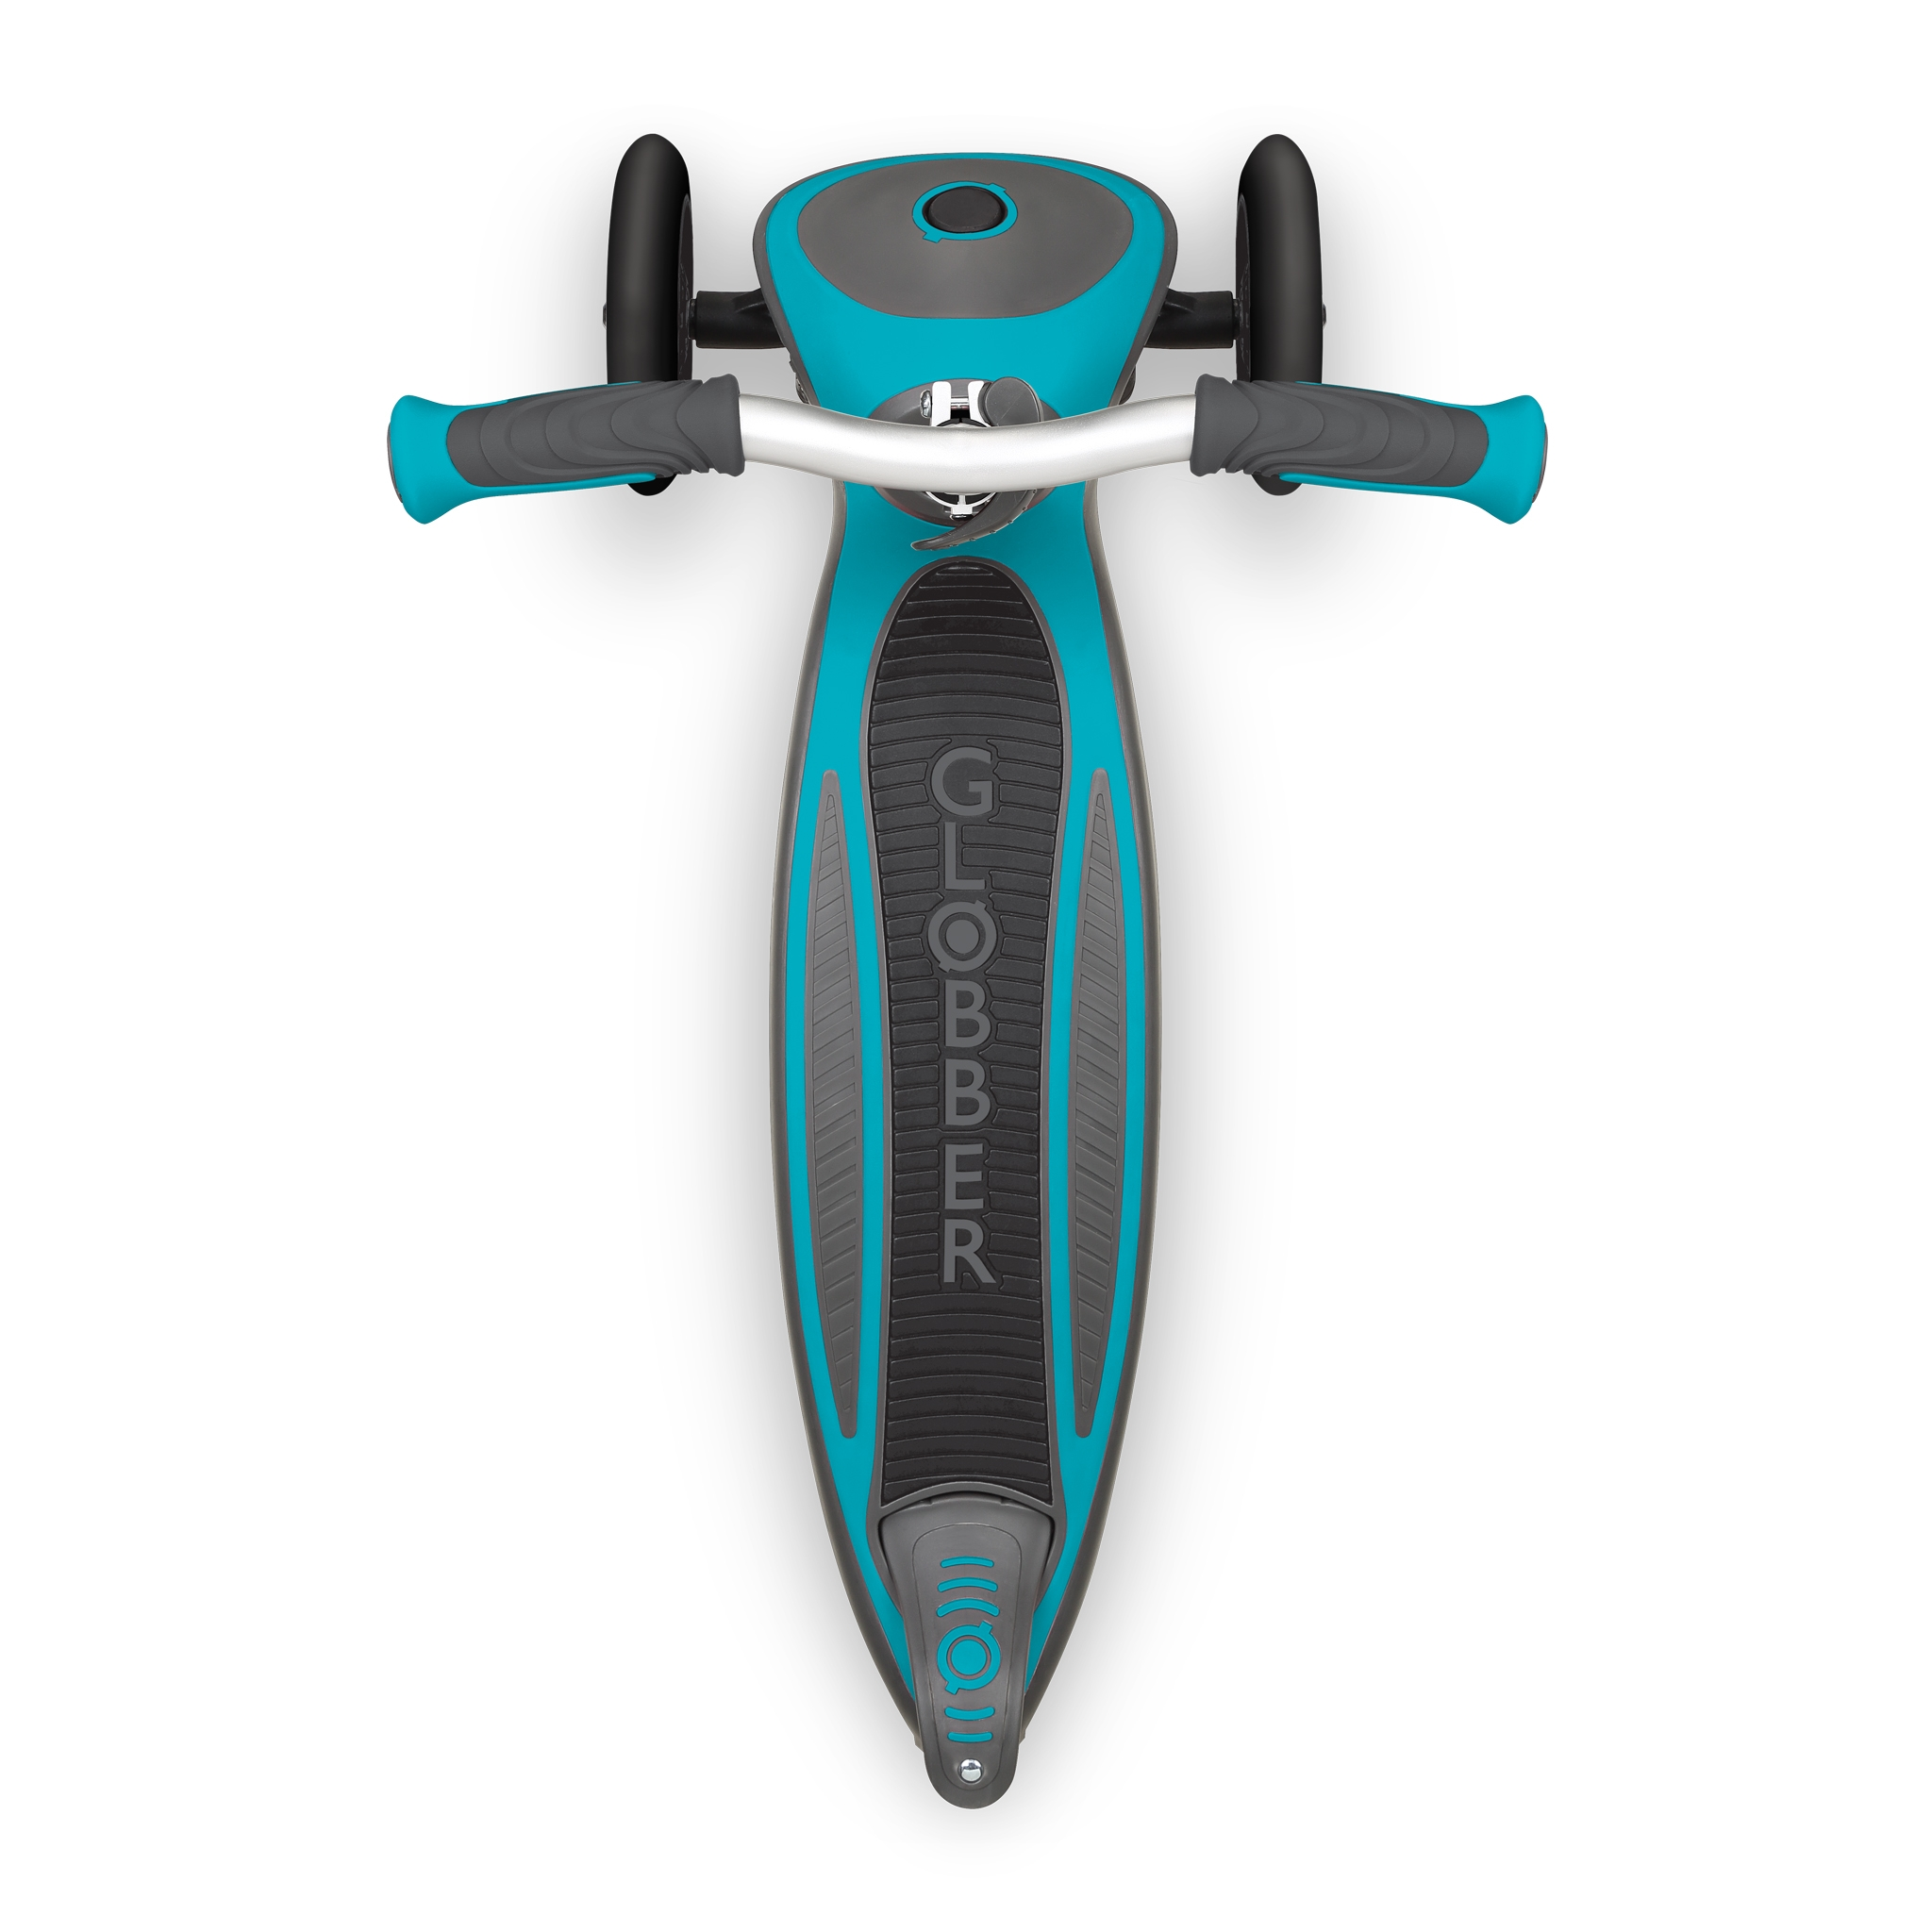 Globber-MASTER-3-wheel-foldable-scooter-for-kids-with-extra-wide-anti-slip-deck-for-comfortable-rides_teal